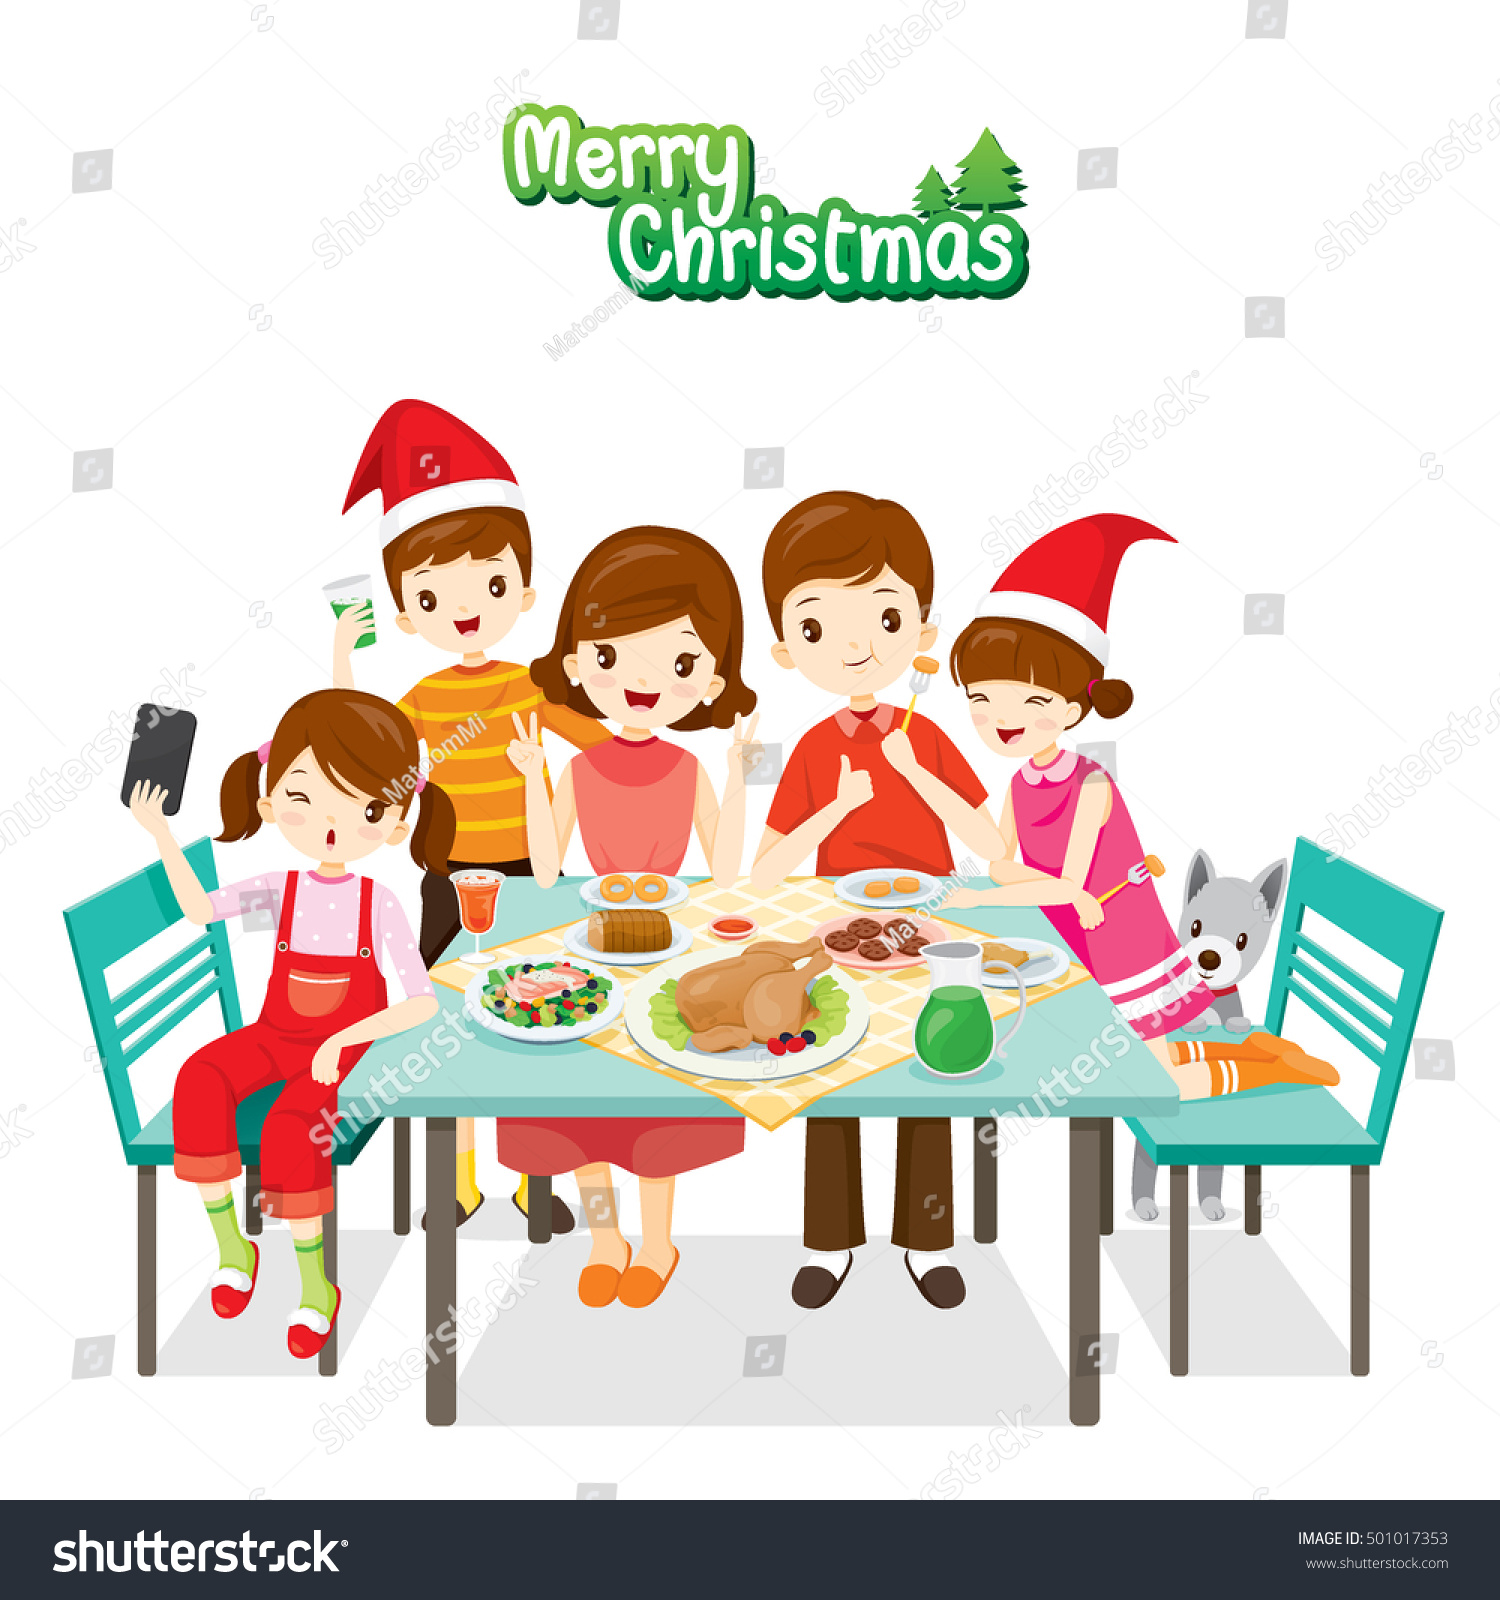 Happy Family Eating Together Merry ChristmasCelebrations Holiday